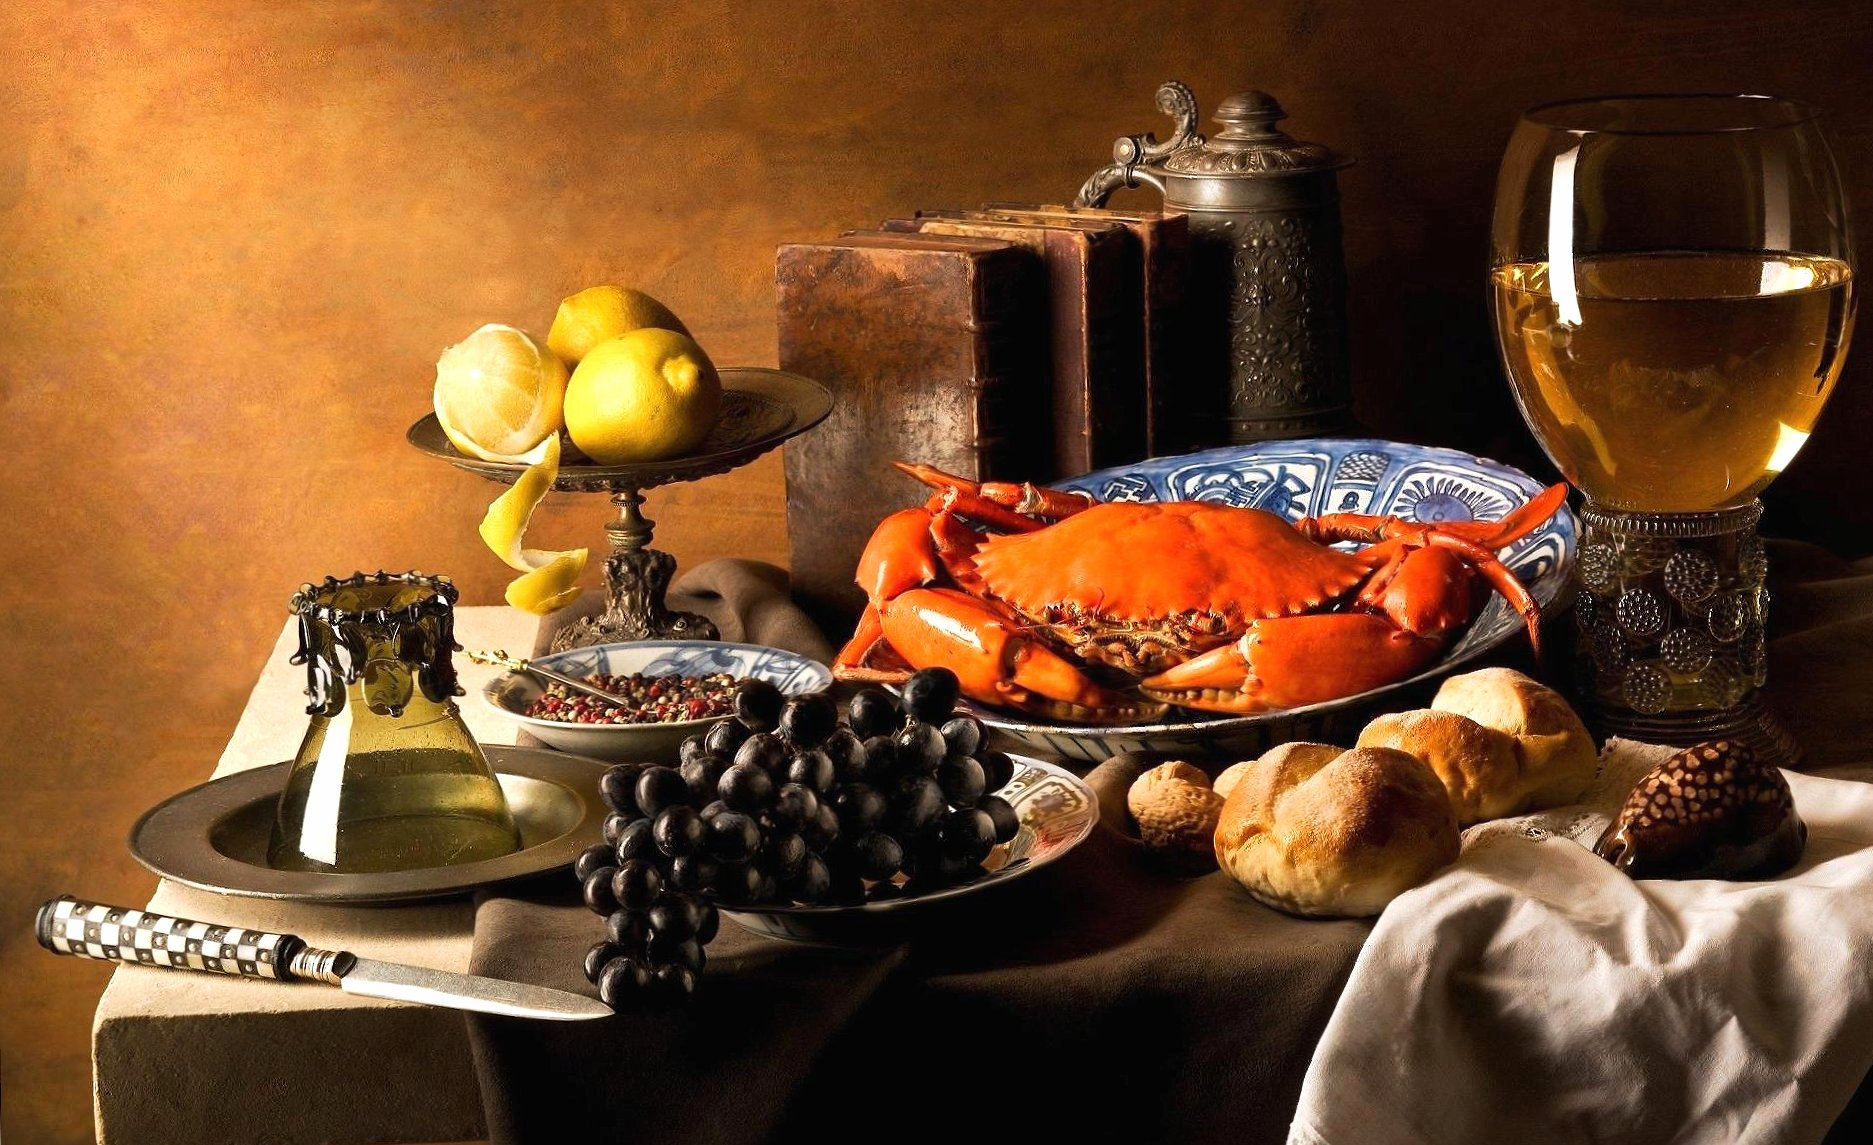 Crab for dinner wallpapers HD quality